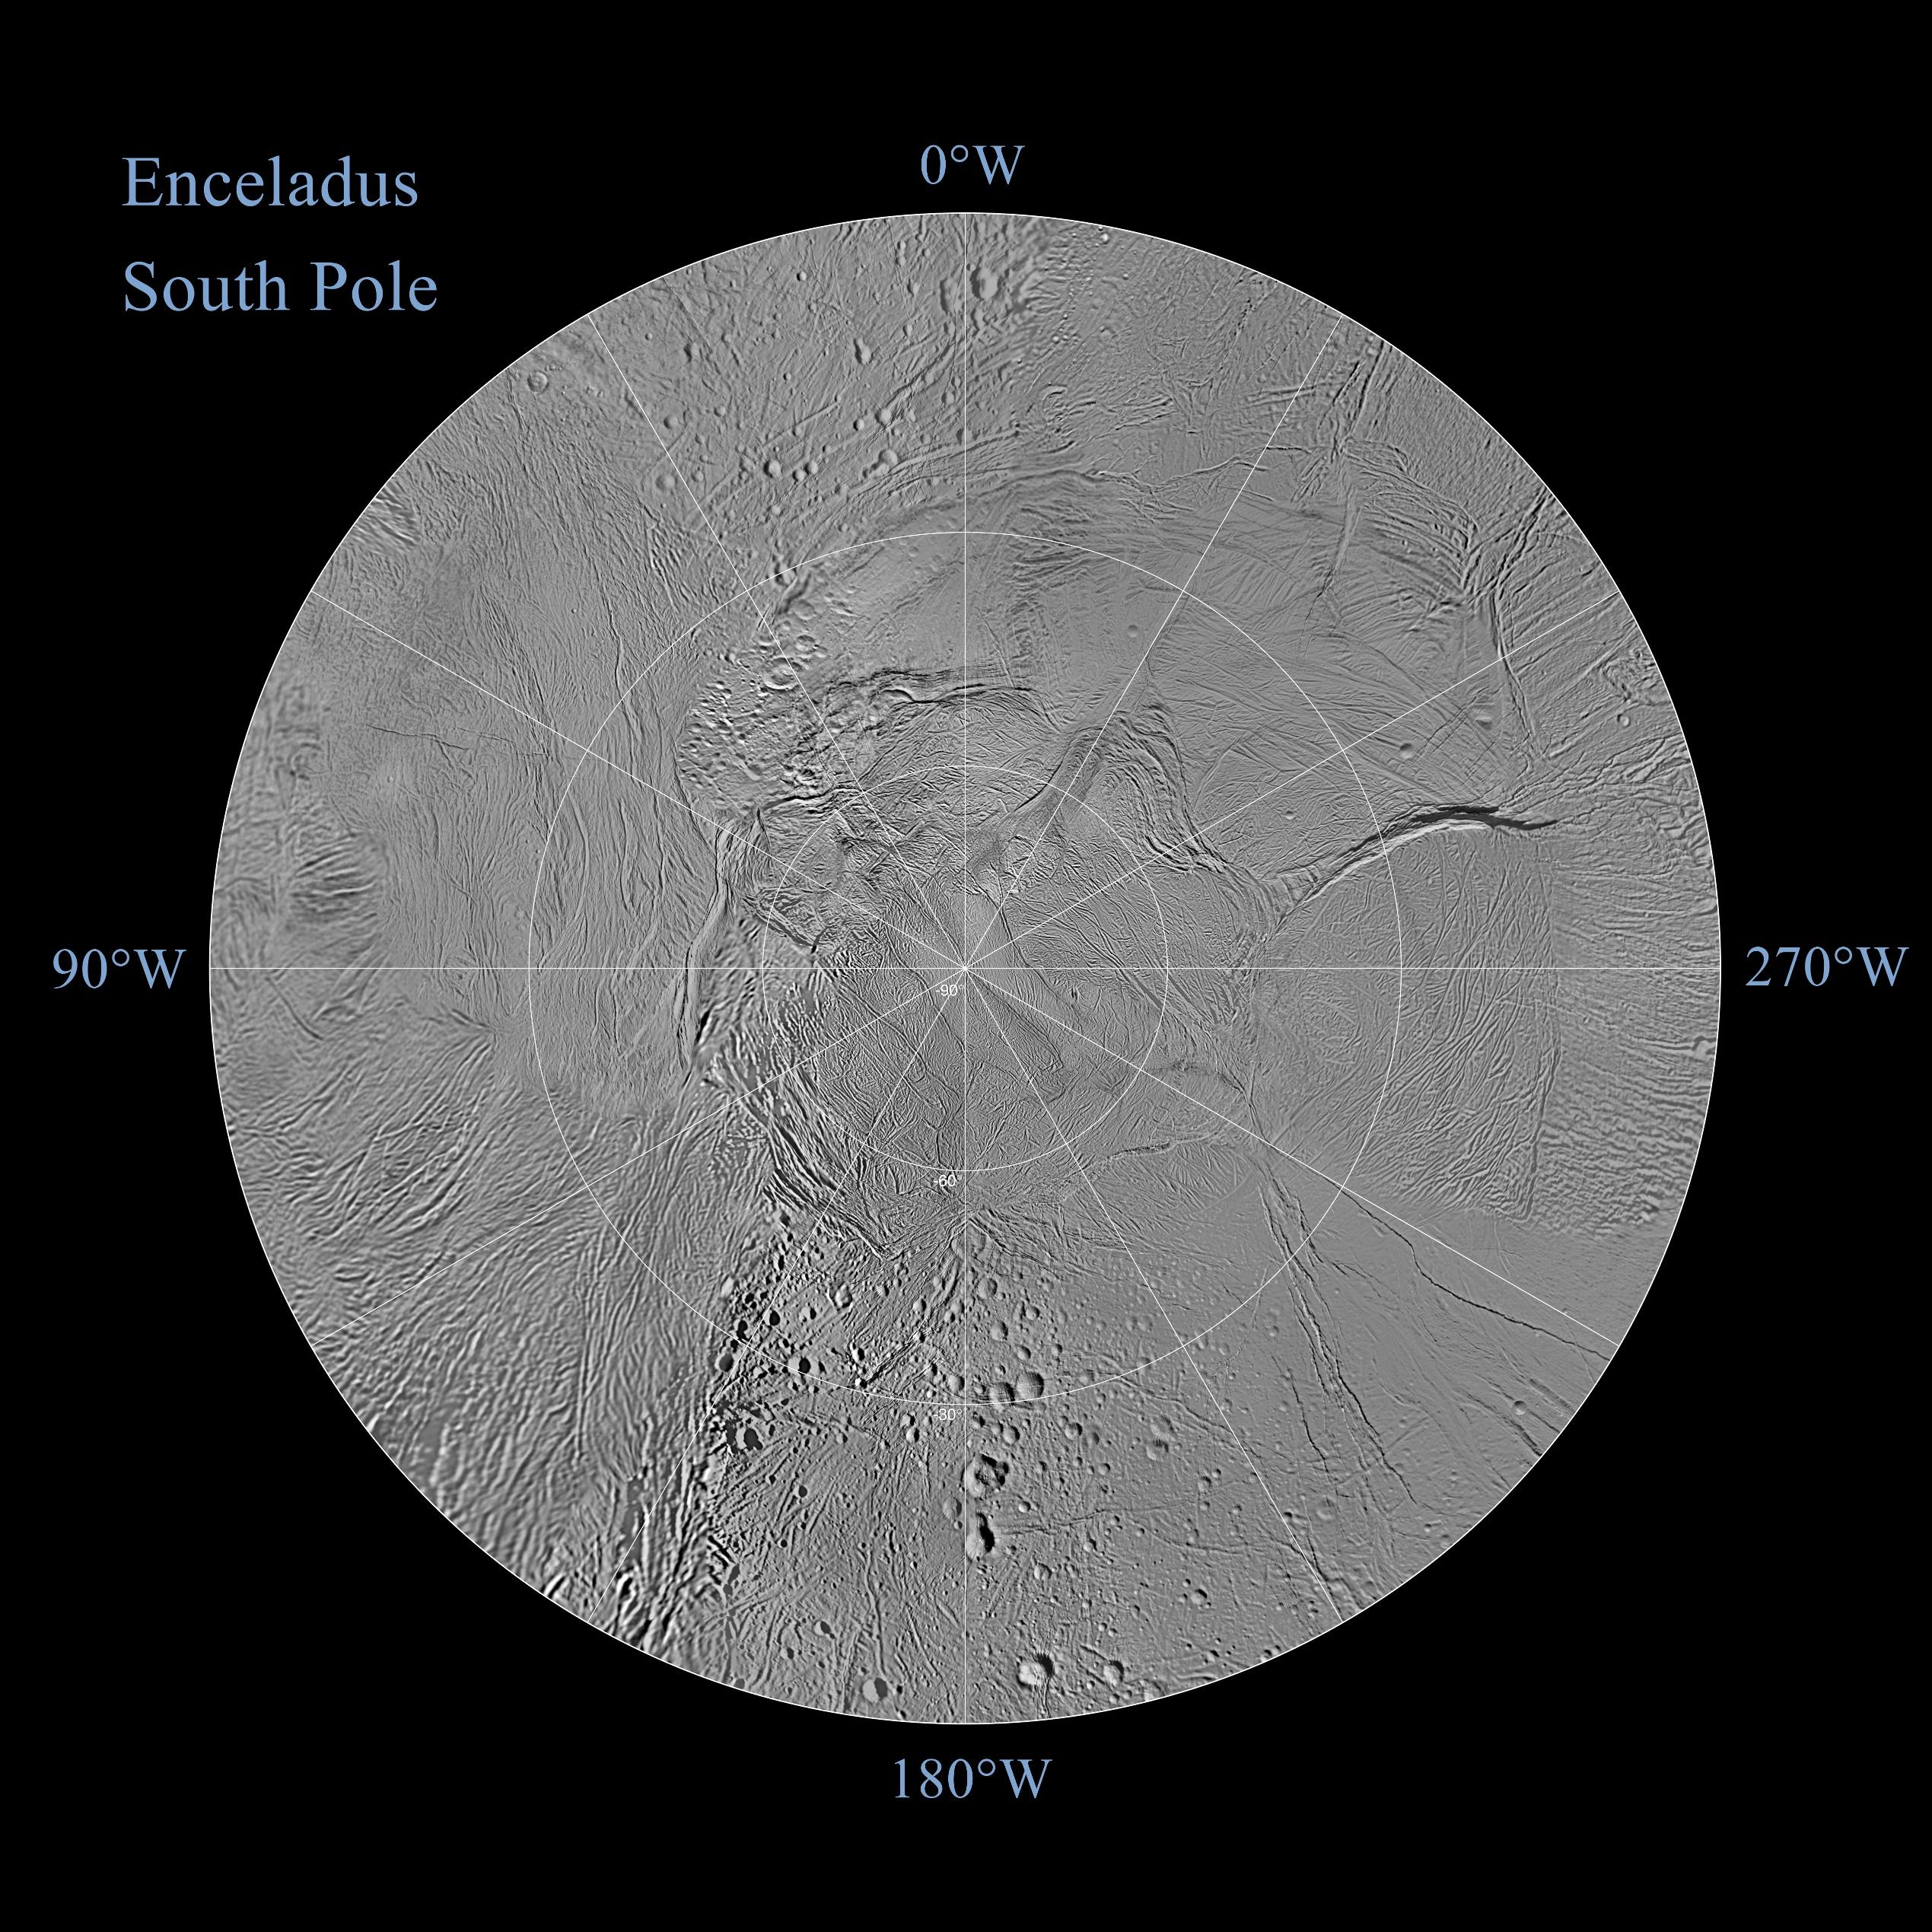 The northern and southern hemispheres of Enceladus are seen in these polar stereographic maps